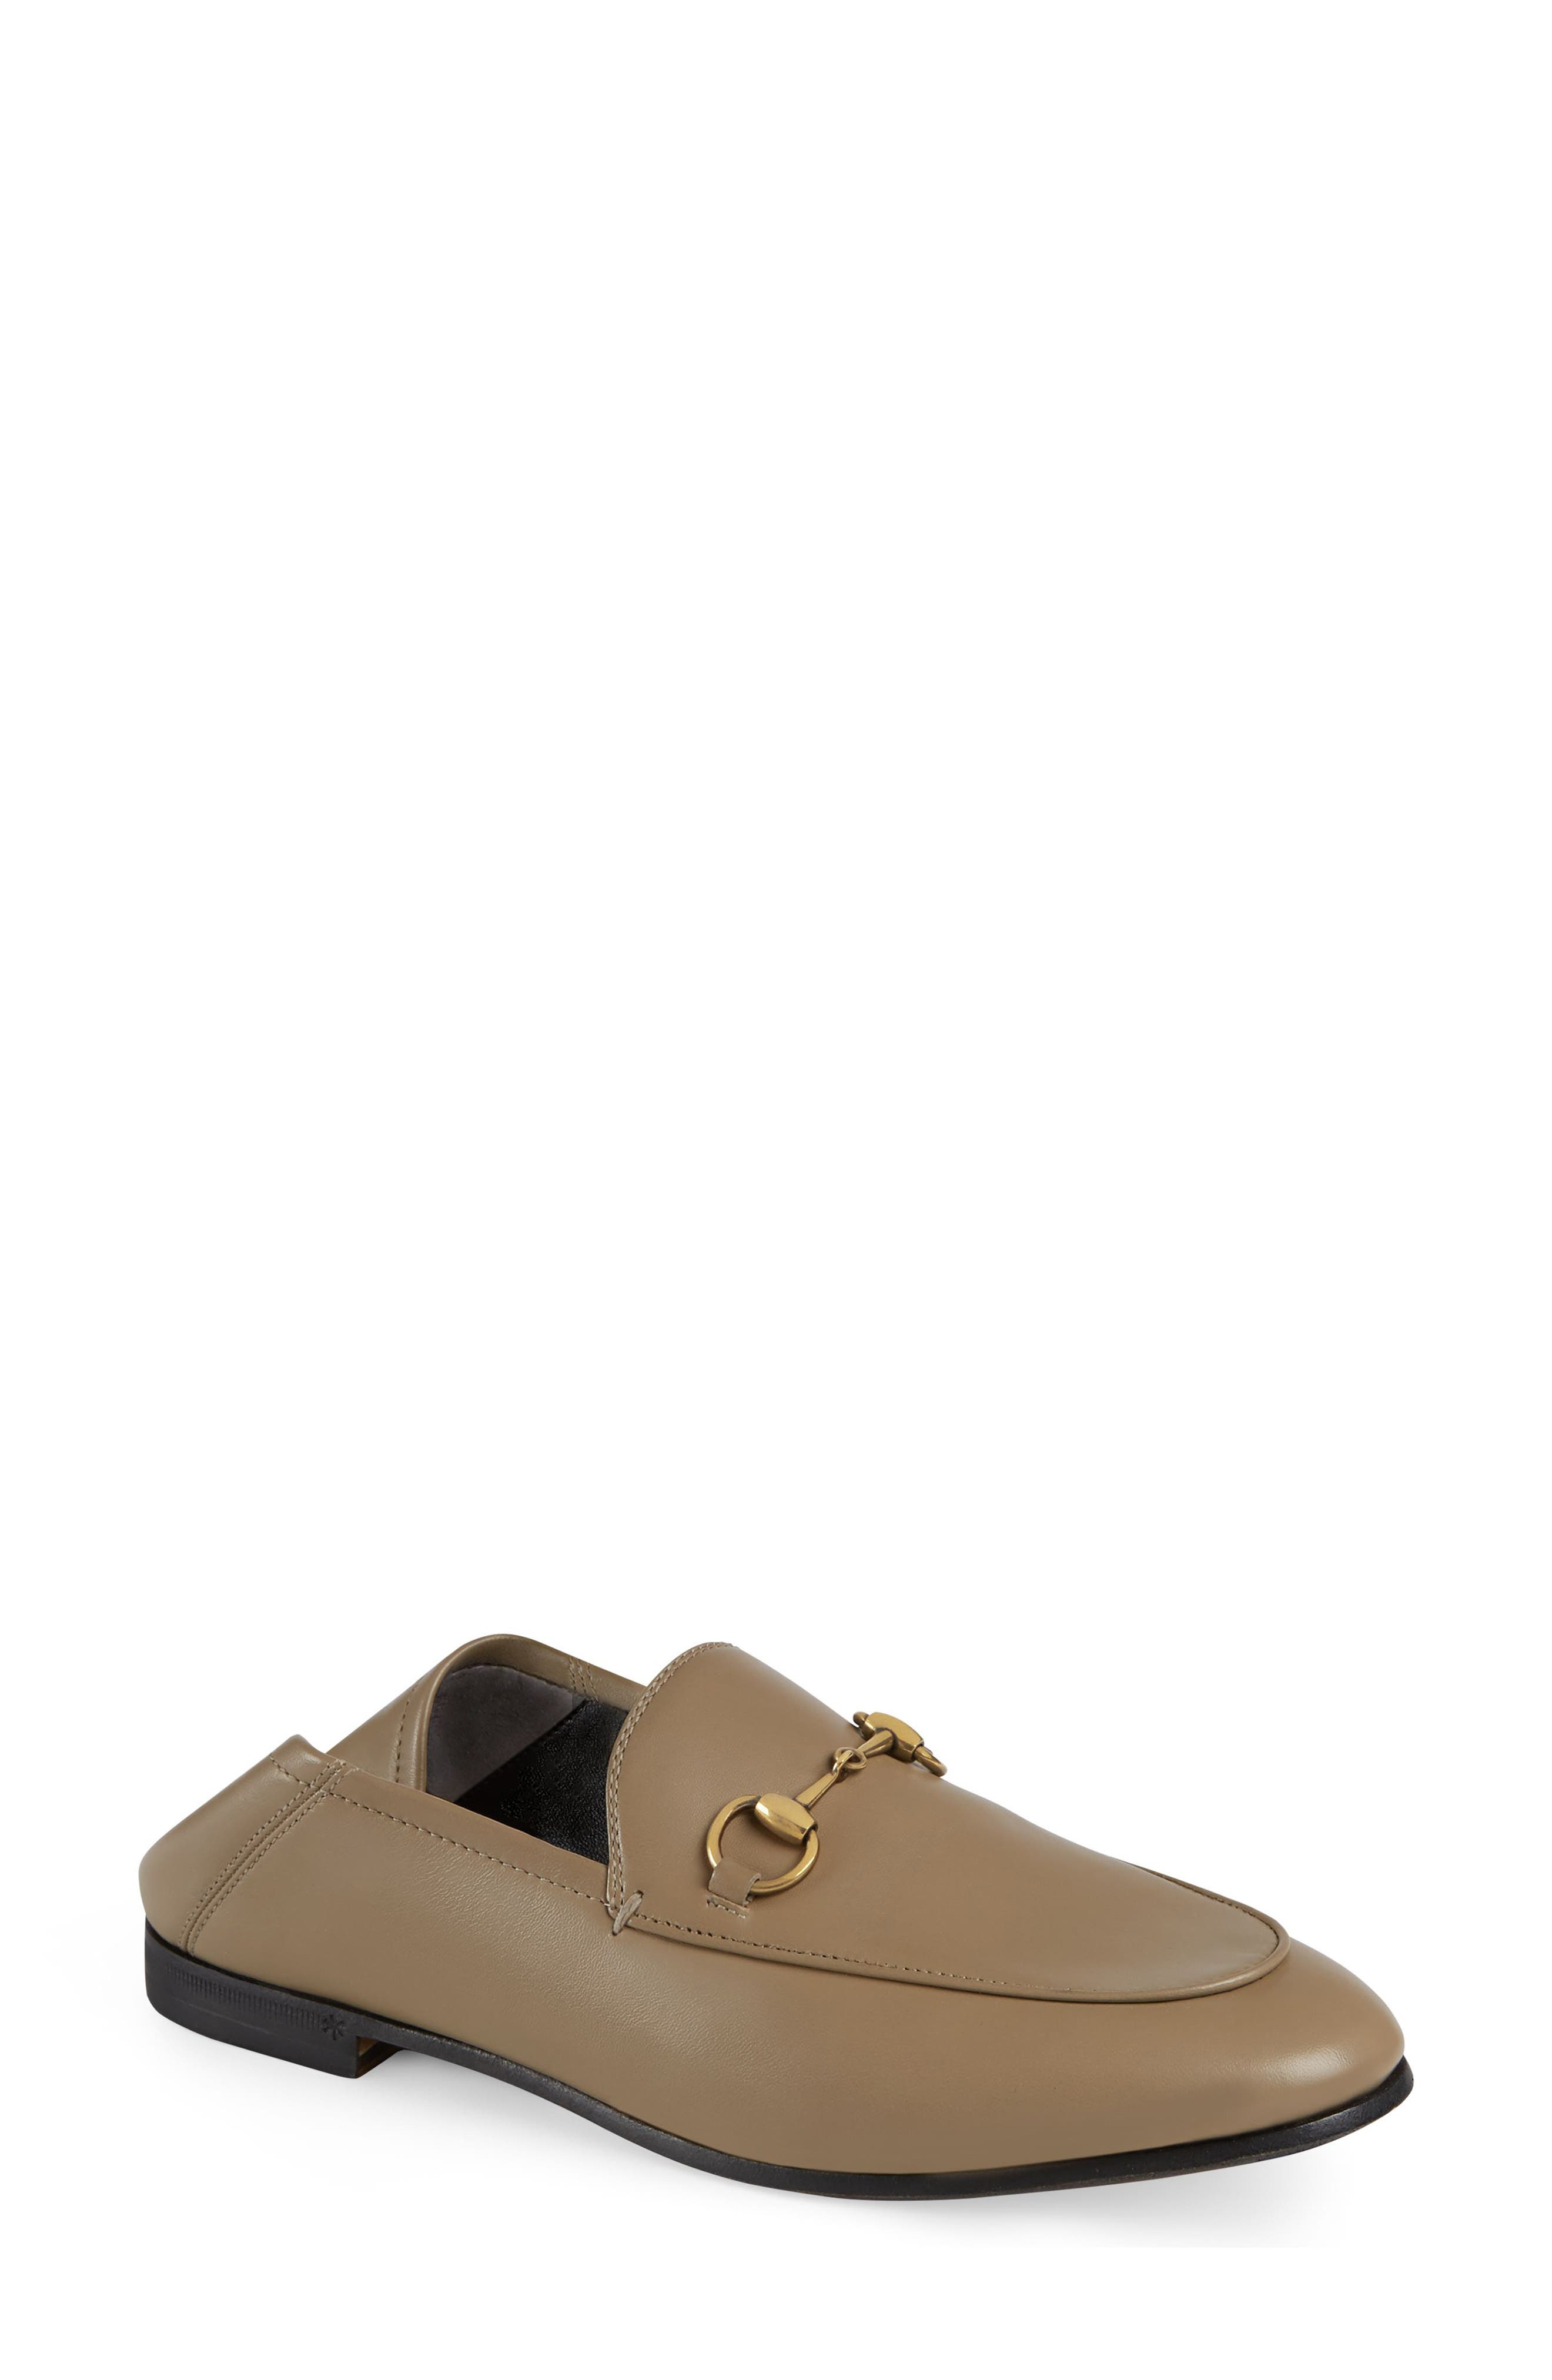 Gucci Brixton Convertible Loafer - Beige